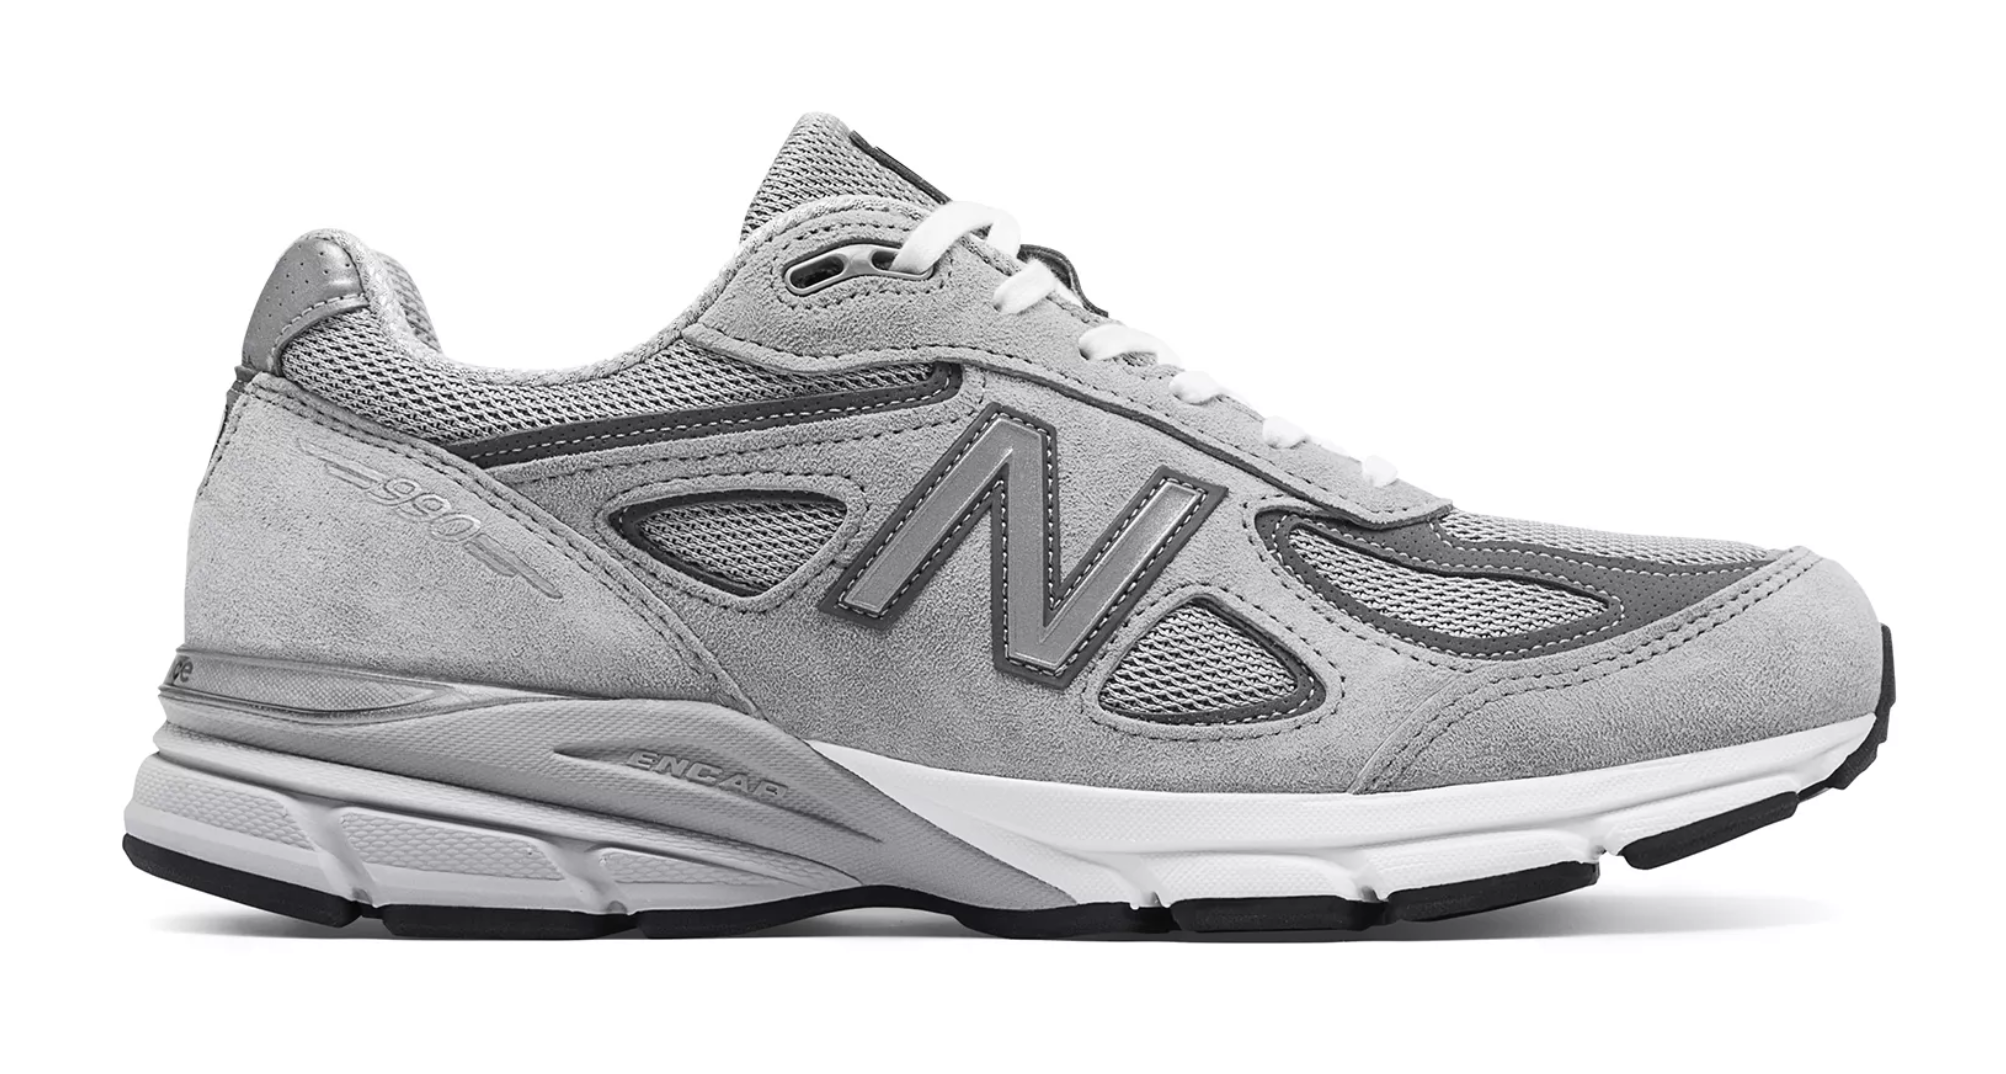 5520b76e667 New Balance Running Shoes - 10 Best Running Shoes from New Balance